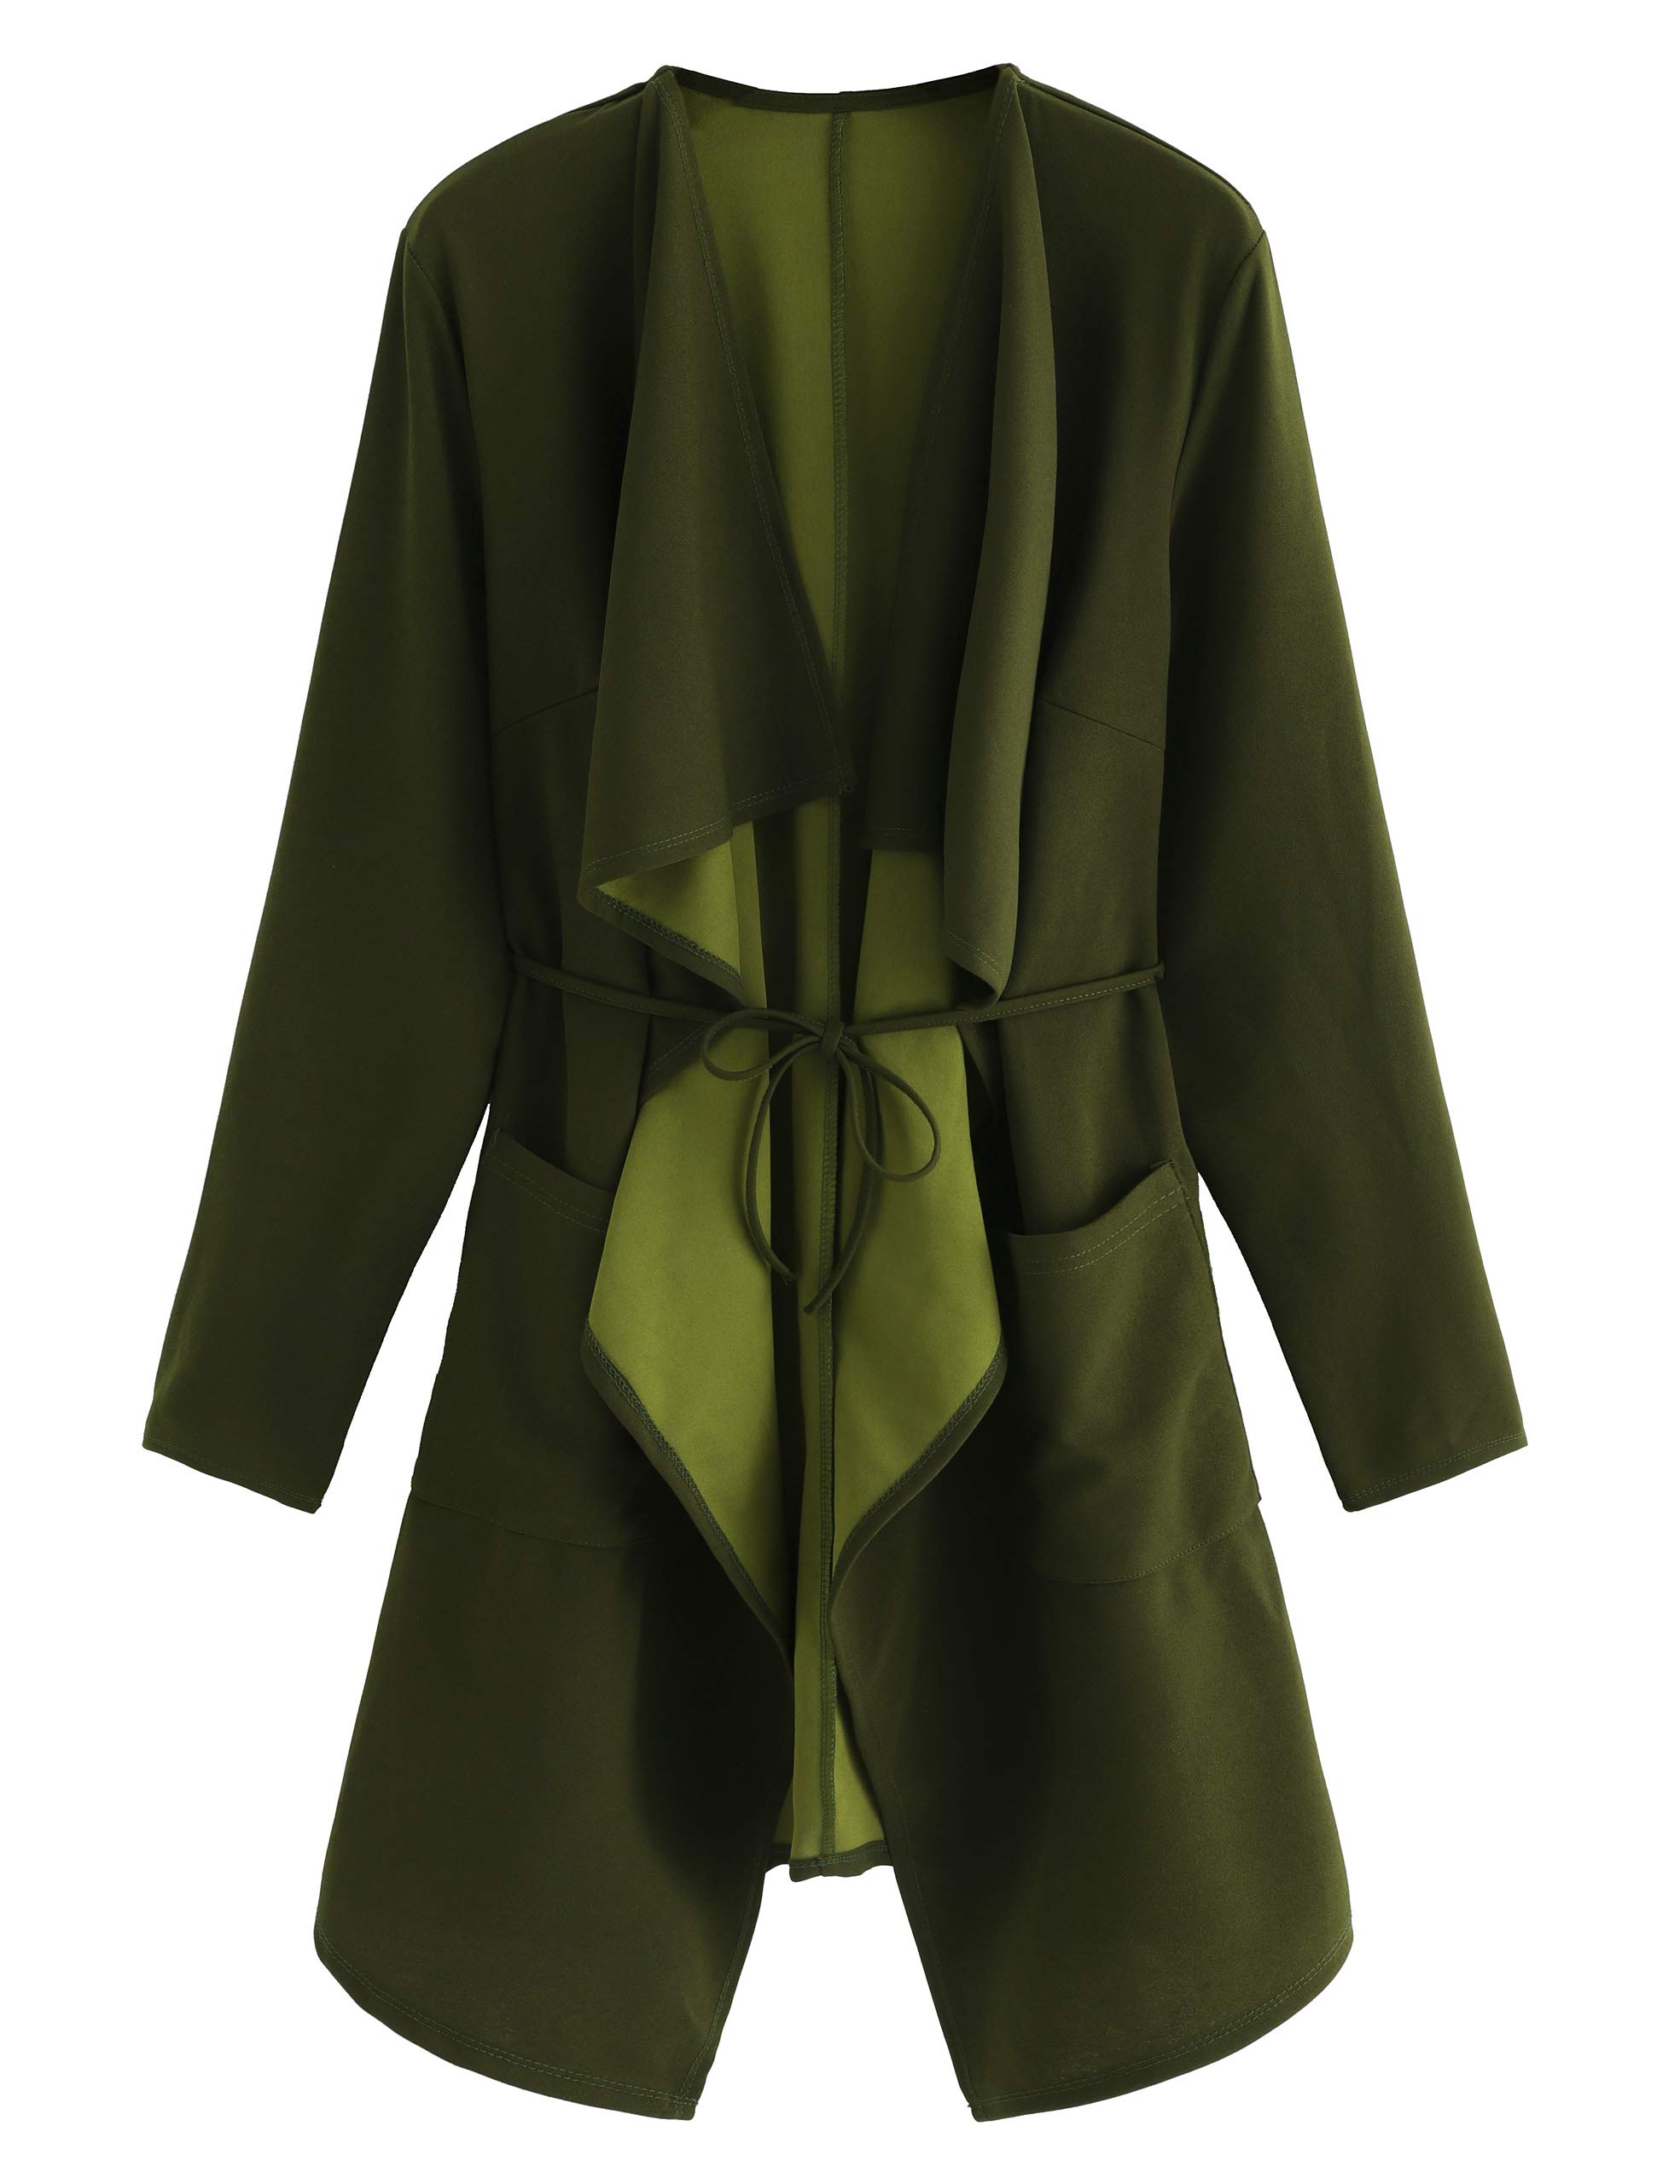 Romwe Women's Waterfall Collar Long Sleeve Wrap Trench Coat Cardigan Green S